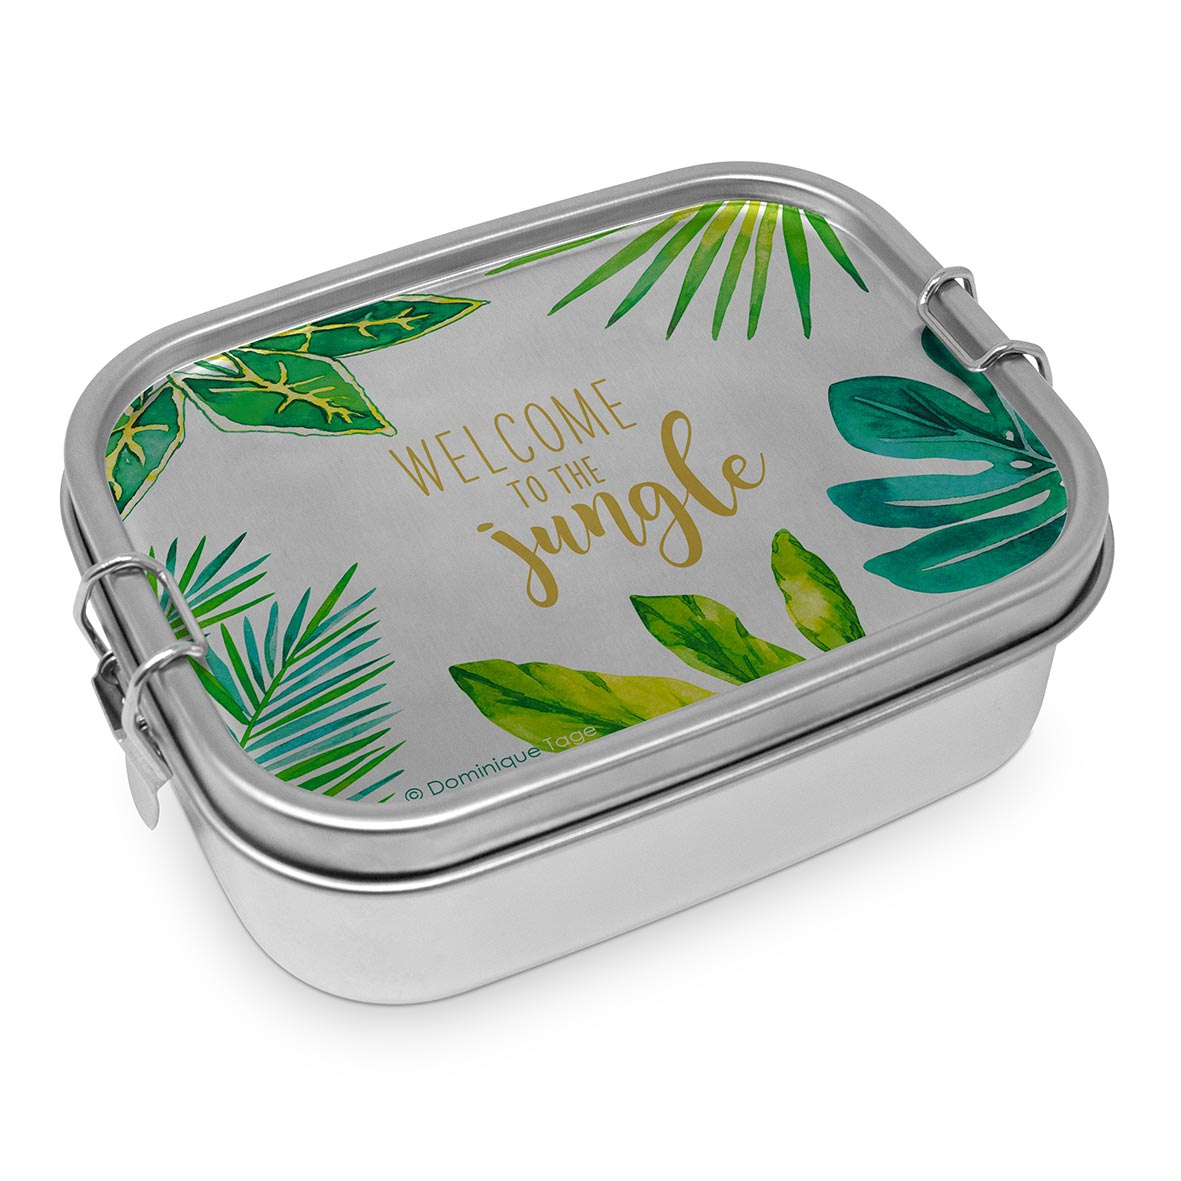 Stainless steel lunch box - Jungle